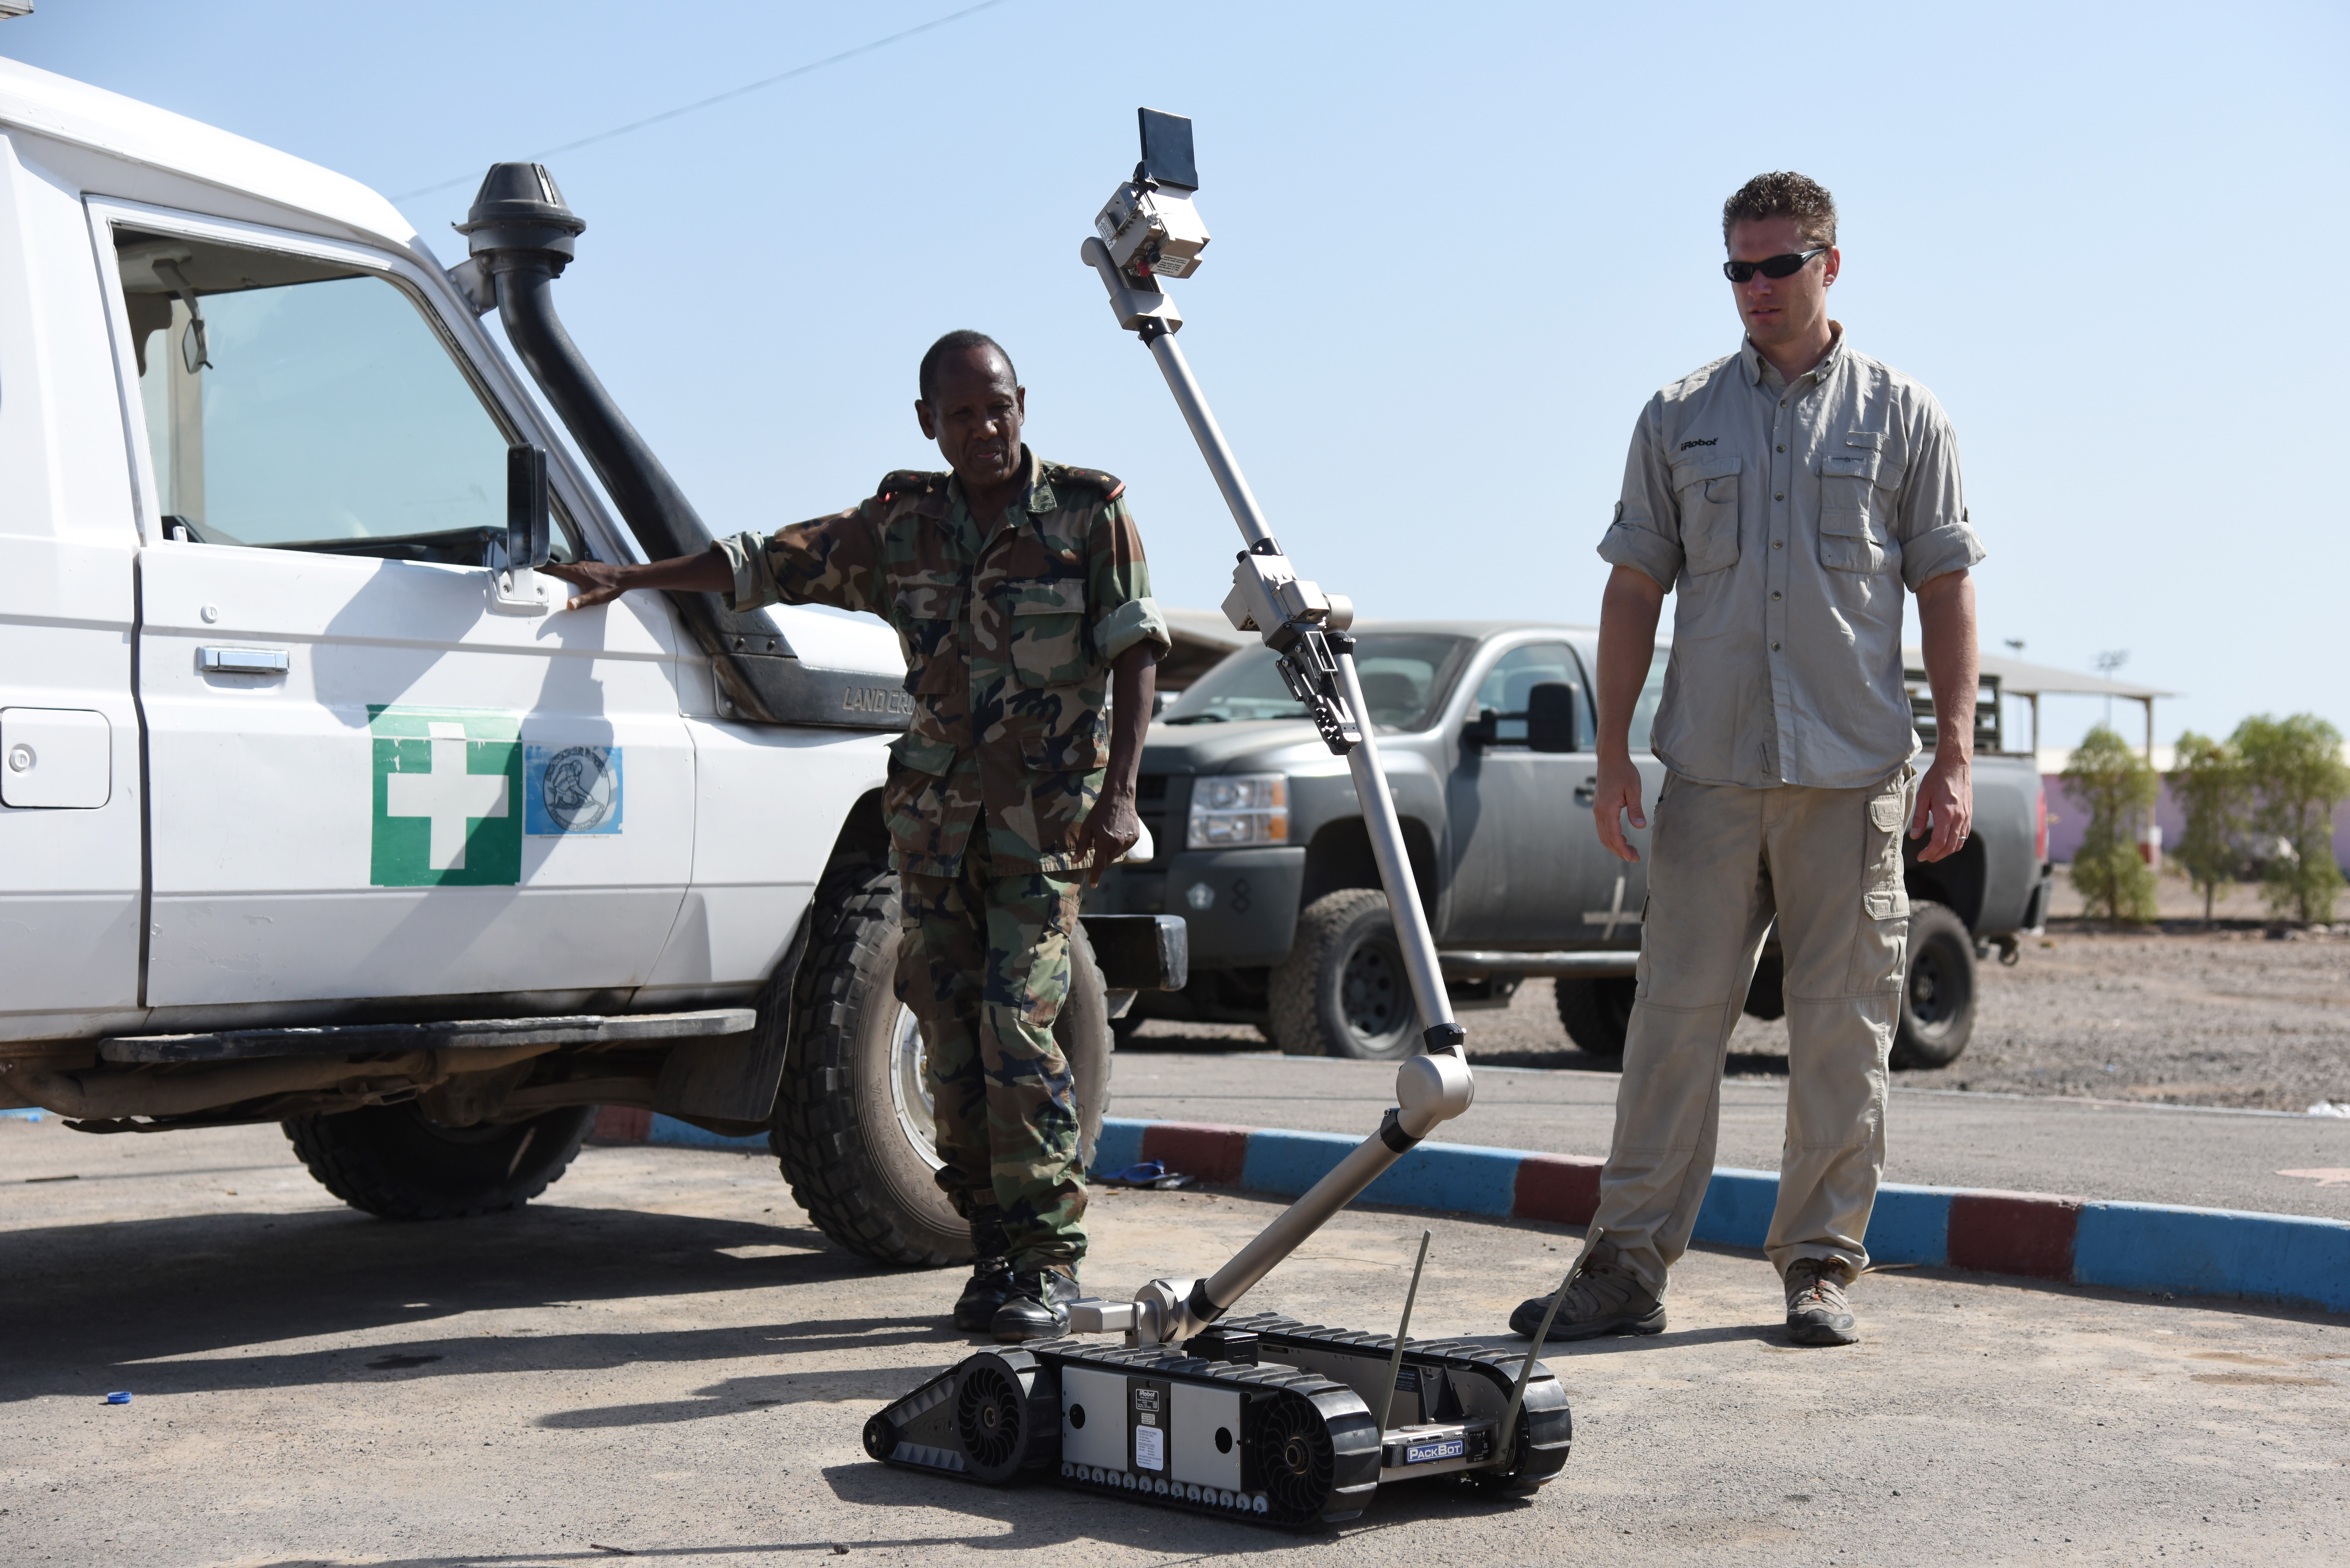 Joseph Brunette, iRobot instructor, shows Djibouti Armed Forces (FAD) service members how to use a 510 Packbot to search for explosive devices in Djibouti, Oct. 12, 2015.  The robot can be used to search confined spaces, clear routes and buildings, and inspect vehicles. (U.S. Air Force photo by Staff Sgt. Maria Bowman)